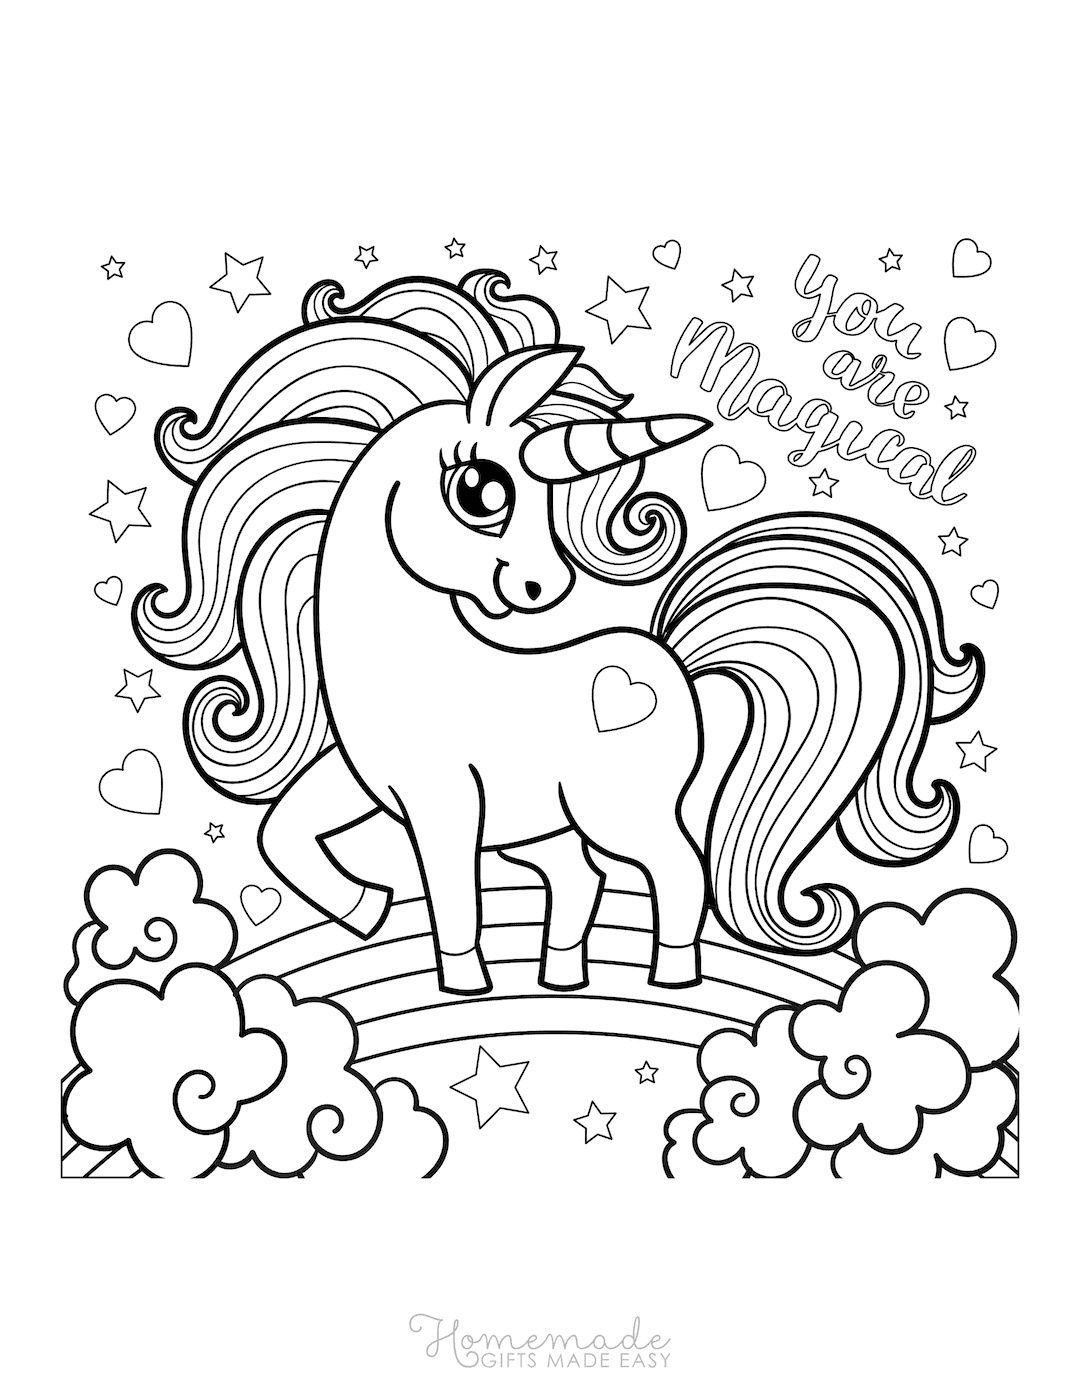 75 Magical Unicorn Coloring Pages For Kids Adults Free Printables Unicorn Coloring Pages Cute Coloring Pages Love Coloring Pages